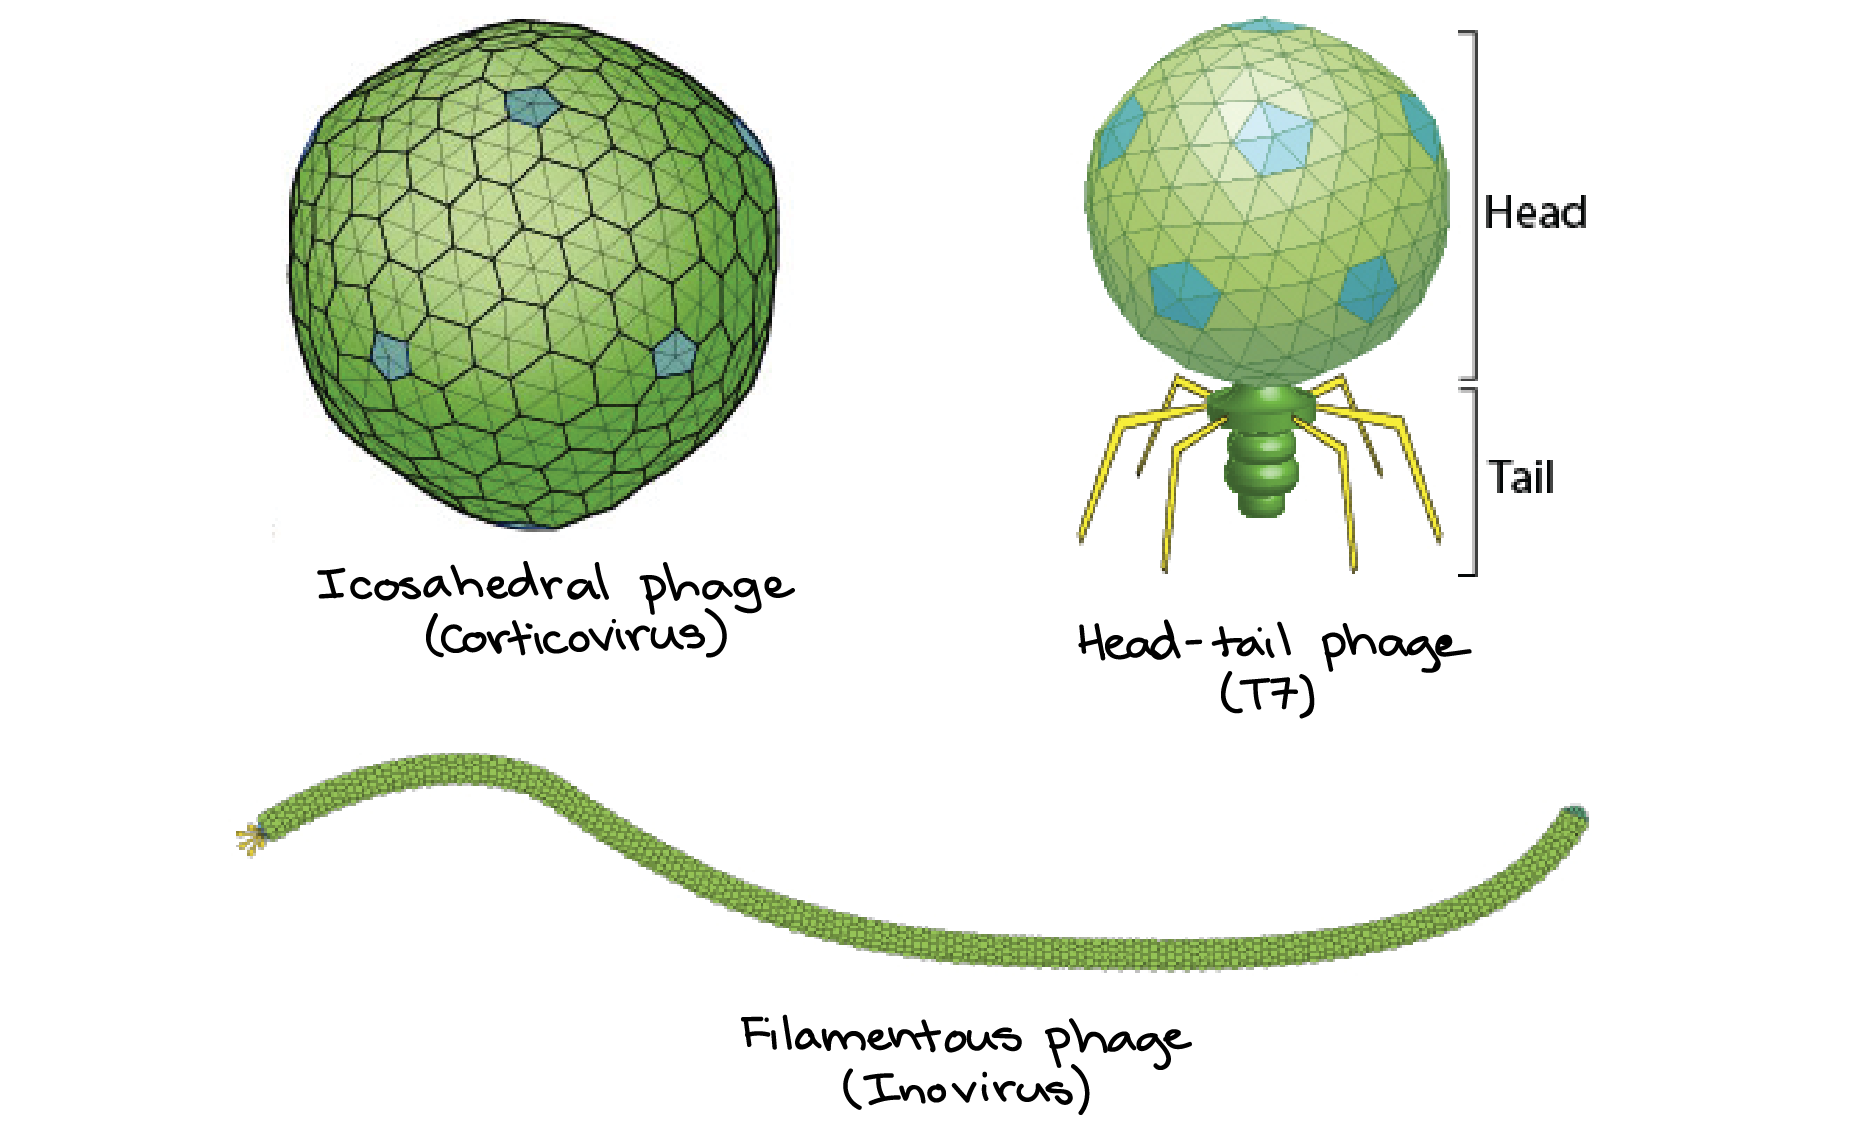 Icosahedral Phage Head Tail And Filamentous